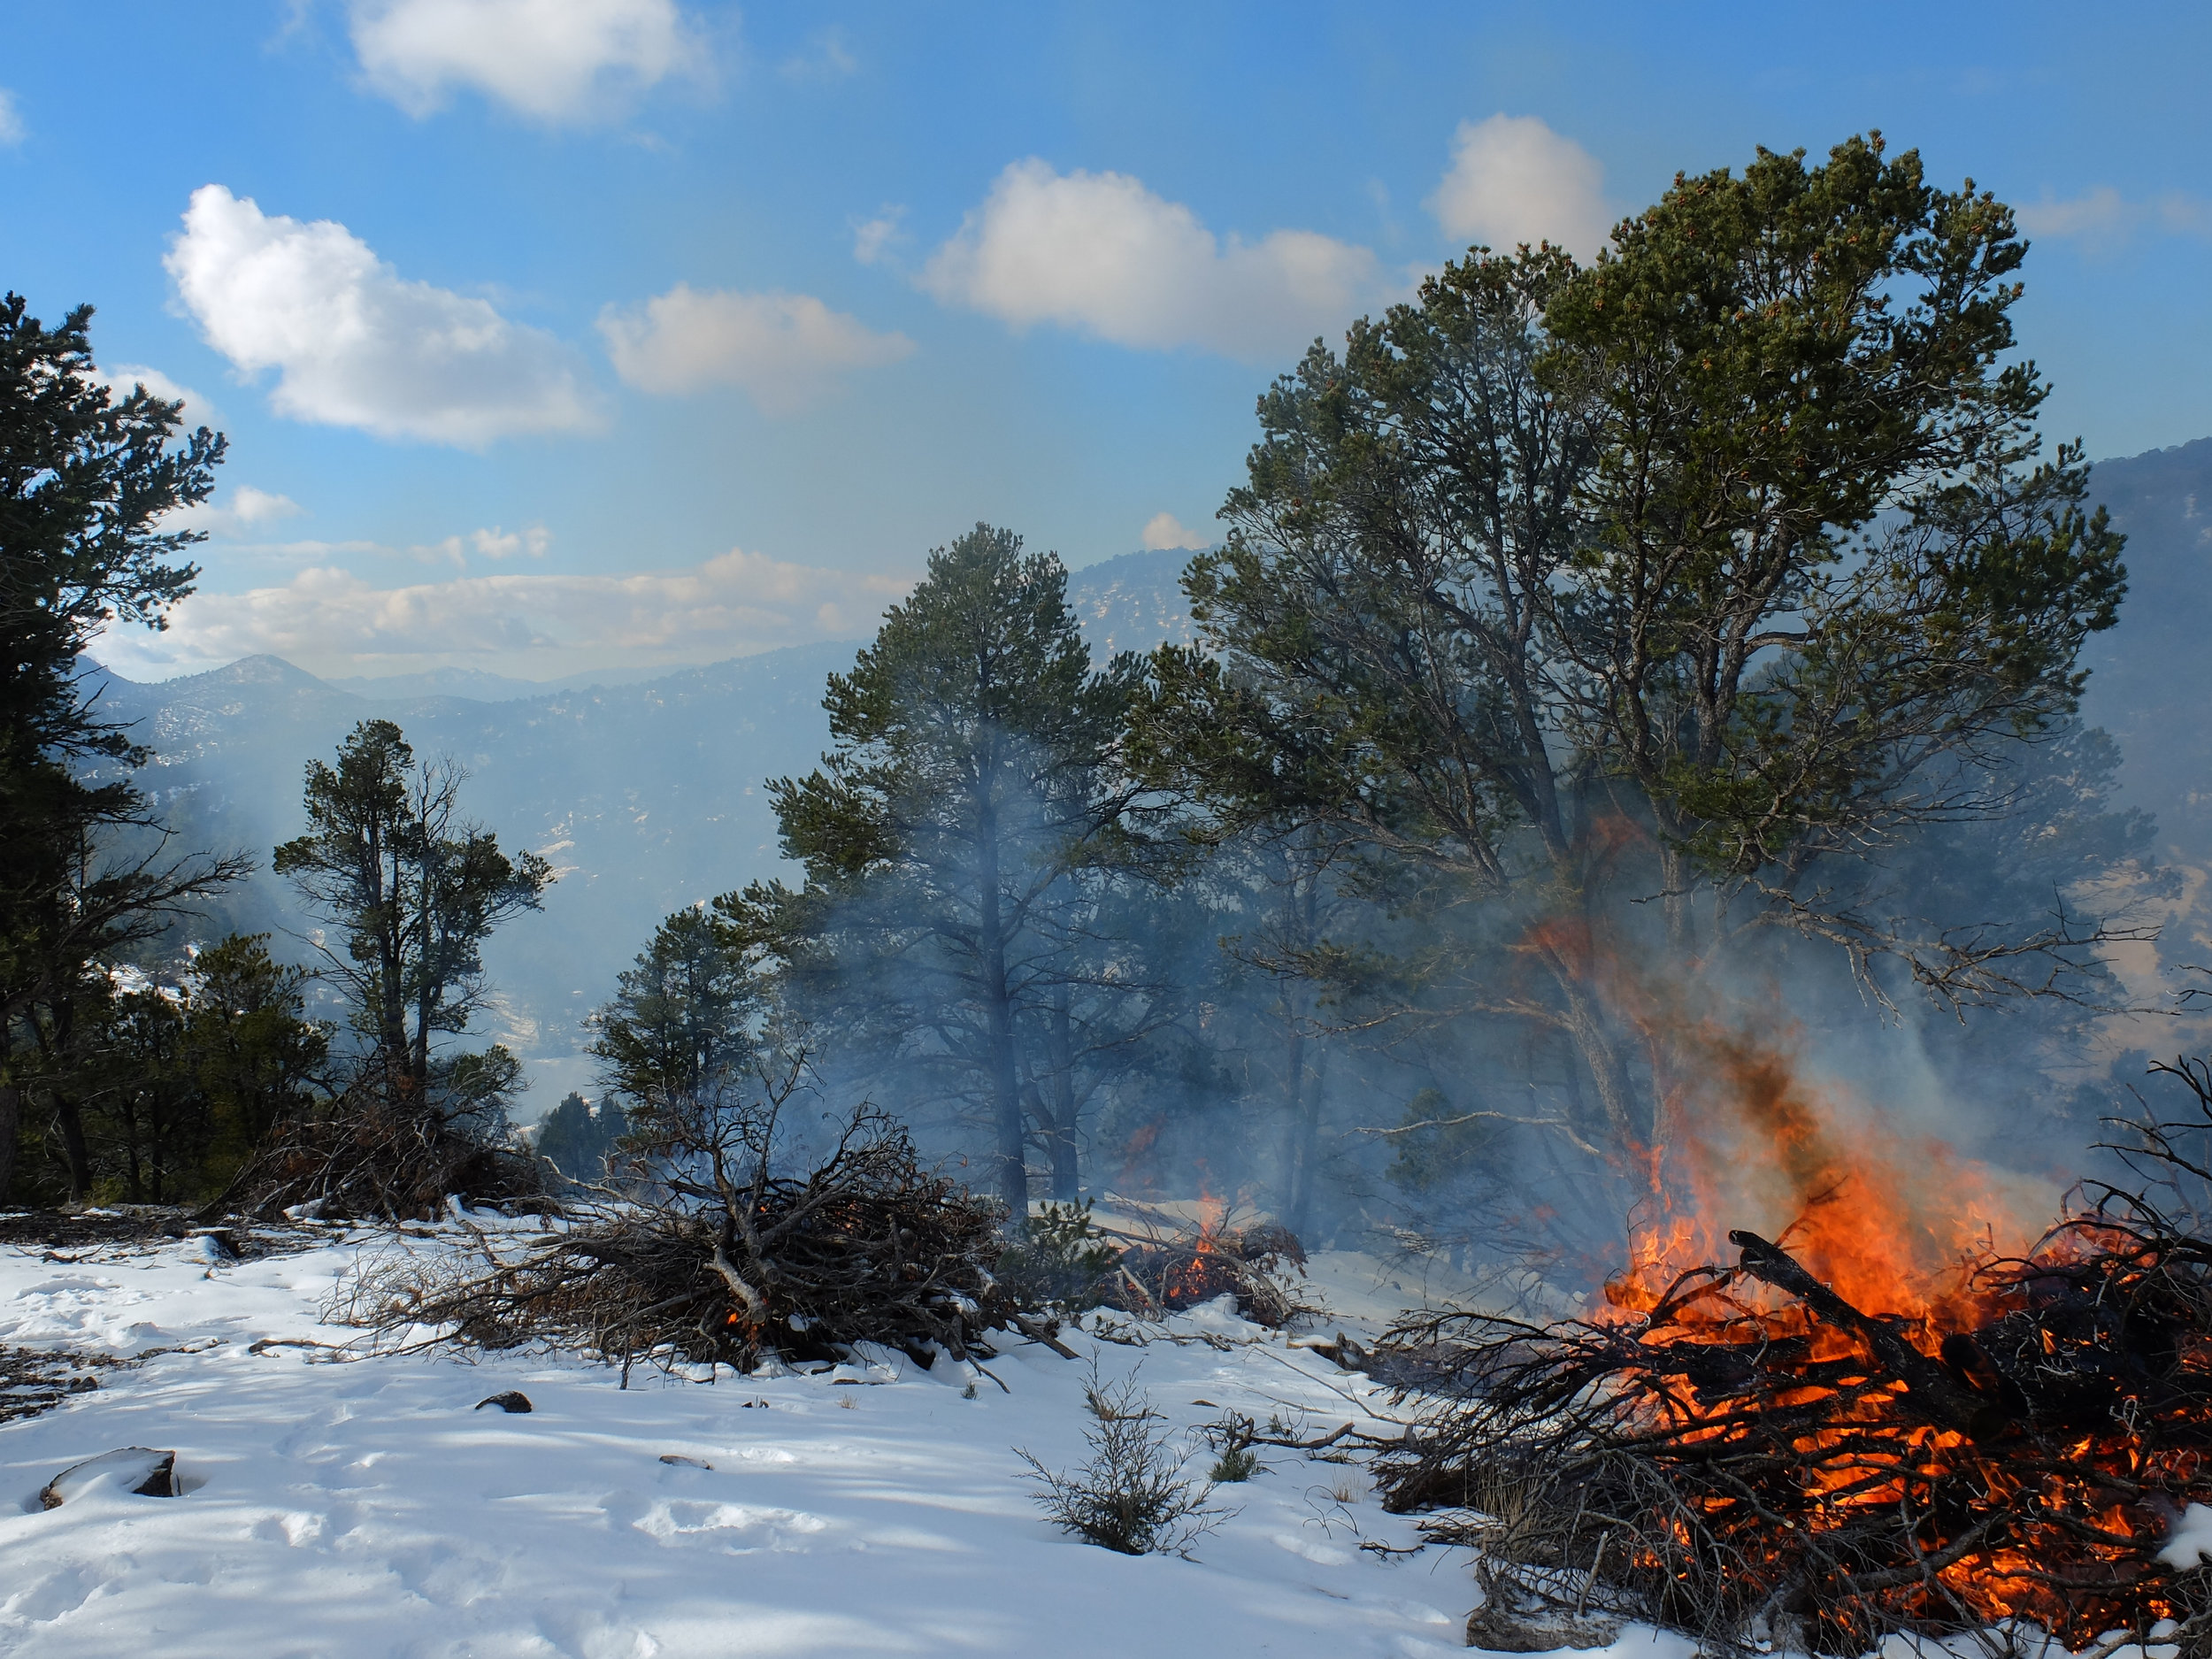 A fireshed is an area where social and ecological concerns regarding wildfire overlap and are intertwined.